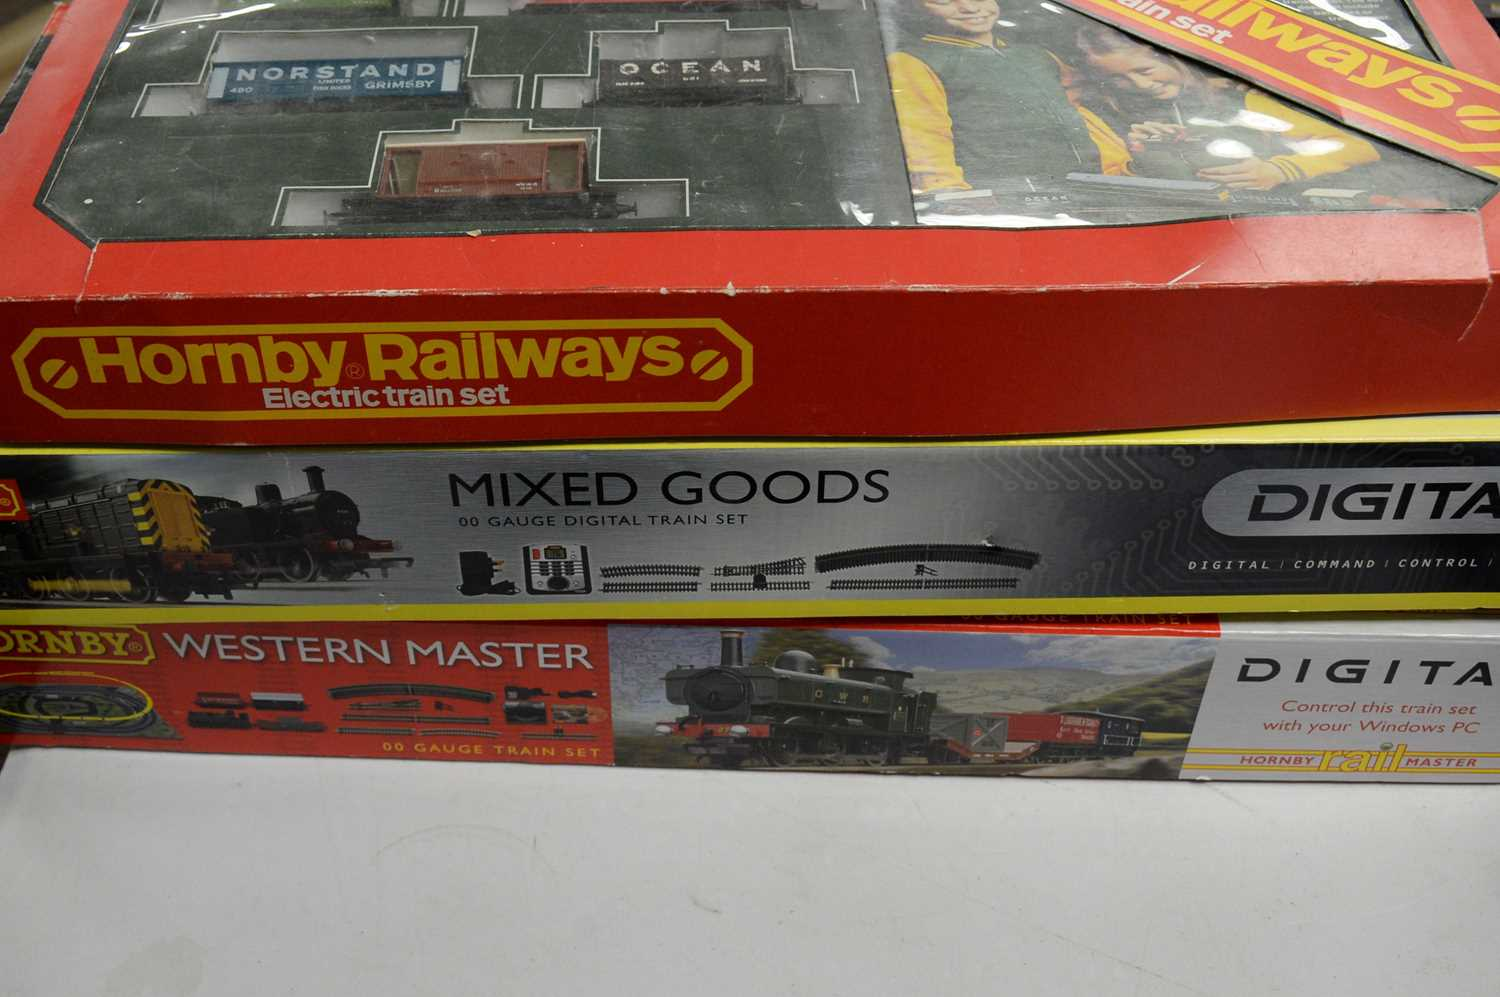 Three boxed Hornby 00-gauge trains sets, and other items. - Image 2 of 3